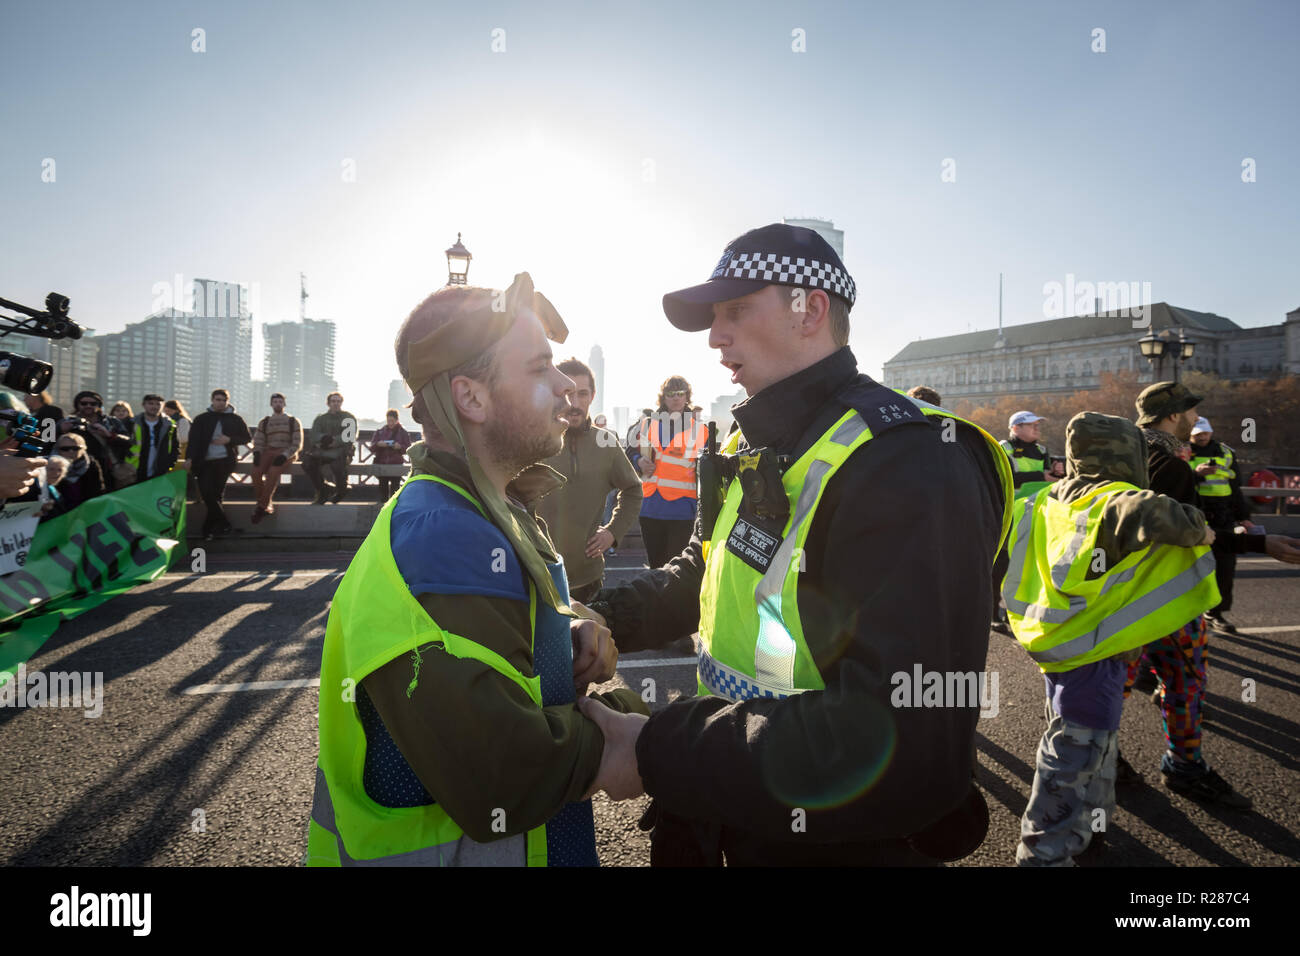 London, UK. 17th November, 2018. Environmental campaigners from Extinction Rebellion block Lambeth Bridge, one of five bridges blocked in central London, as part of a Rebellion Day event to highlight 'criminal inaction in the face of climate change catastrophe and ecological collapse' by the UK Government as part of a programme of civil disobedience during which scores of campaigners have been arrested. Credit: Guy Corbishley/Alamy Live News Stock Photo